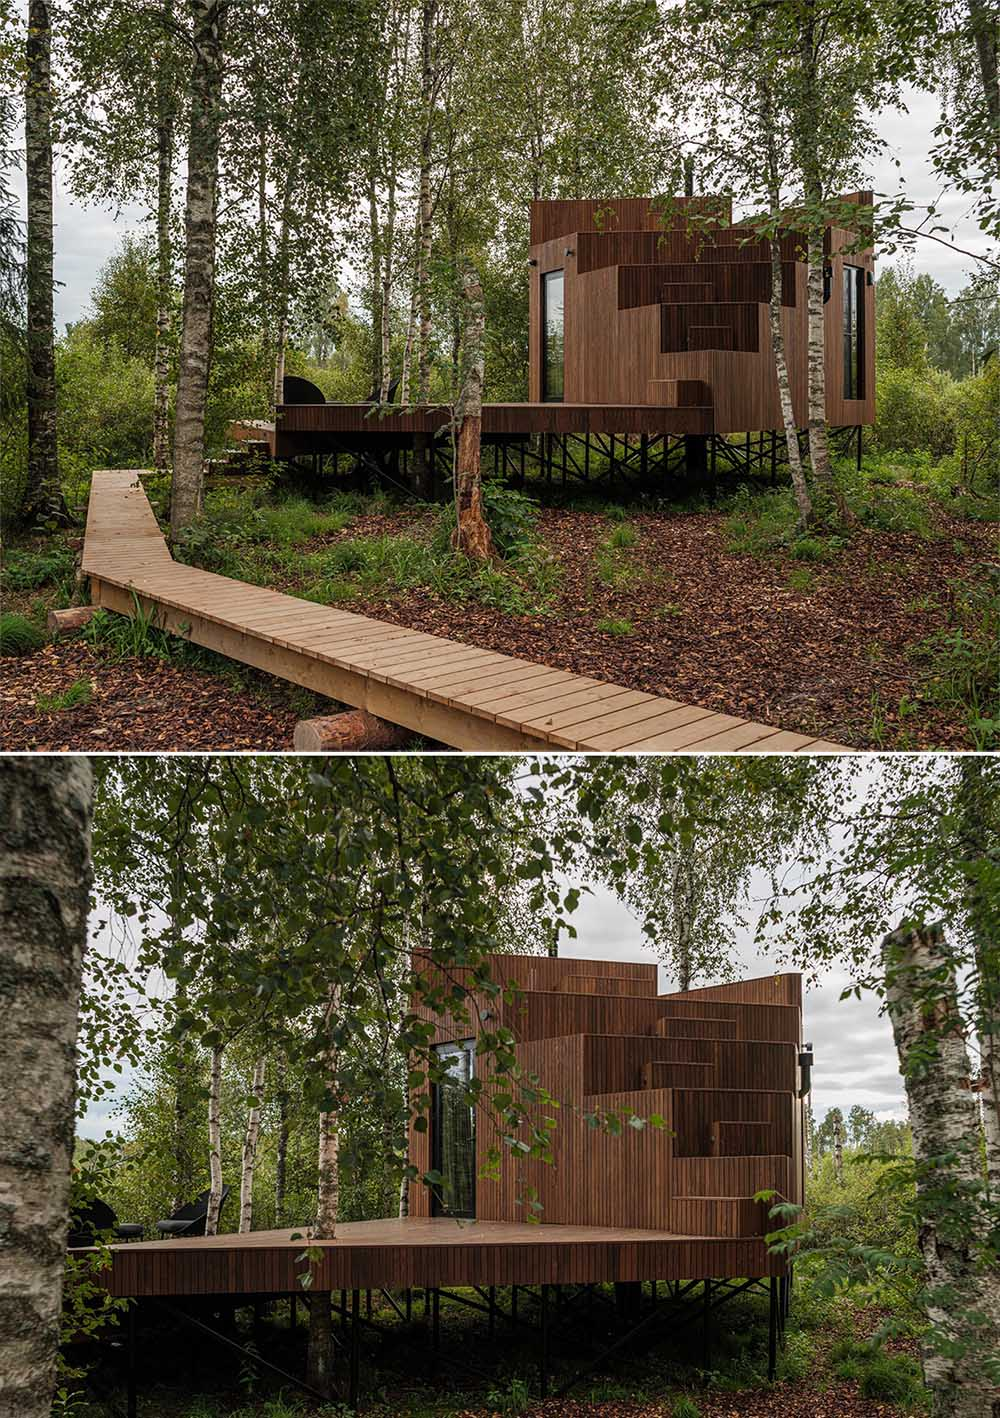 This tiny treehouse-inspired cabin is accessed via a boardwalk that connects to the deck.